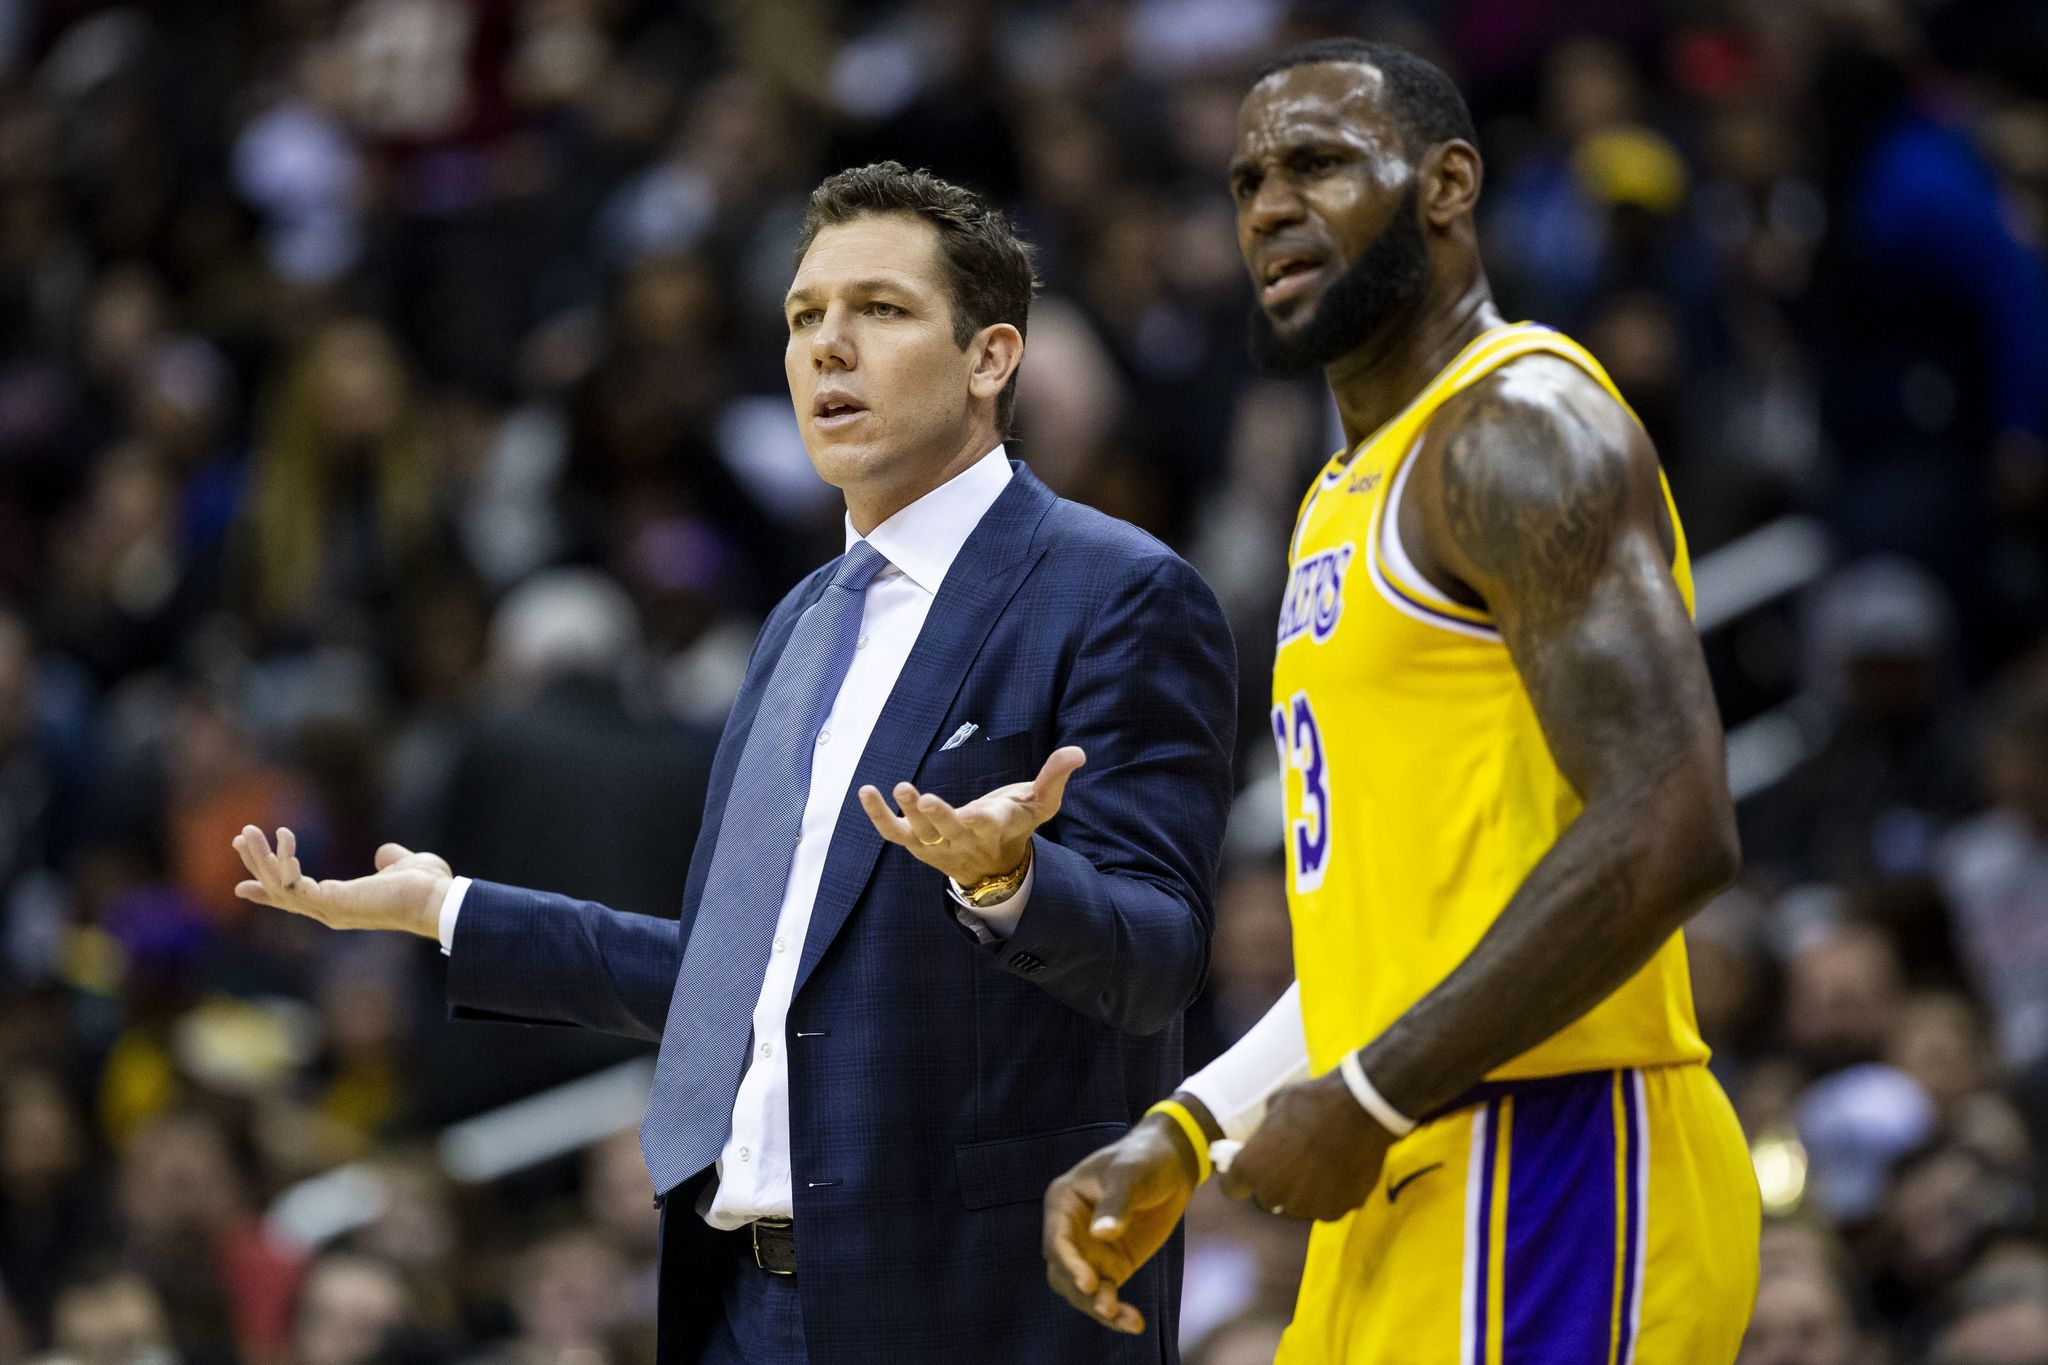 Lakers_wizards_basketball_91751.jpg-b8f4f_s2048x1365